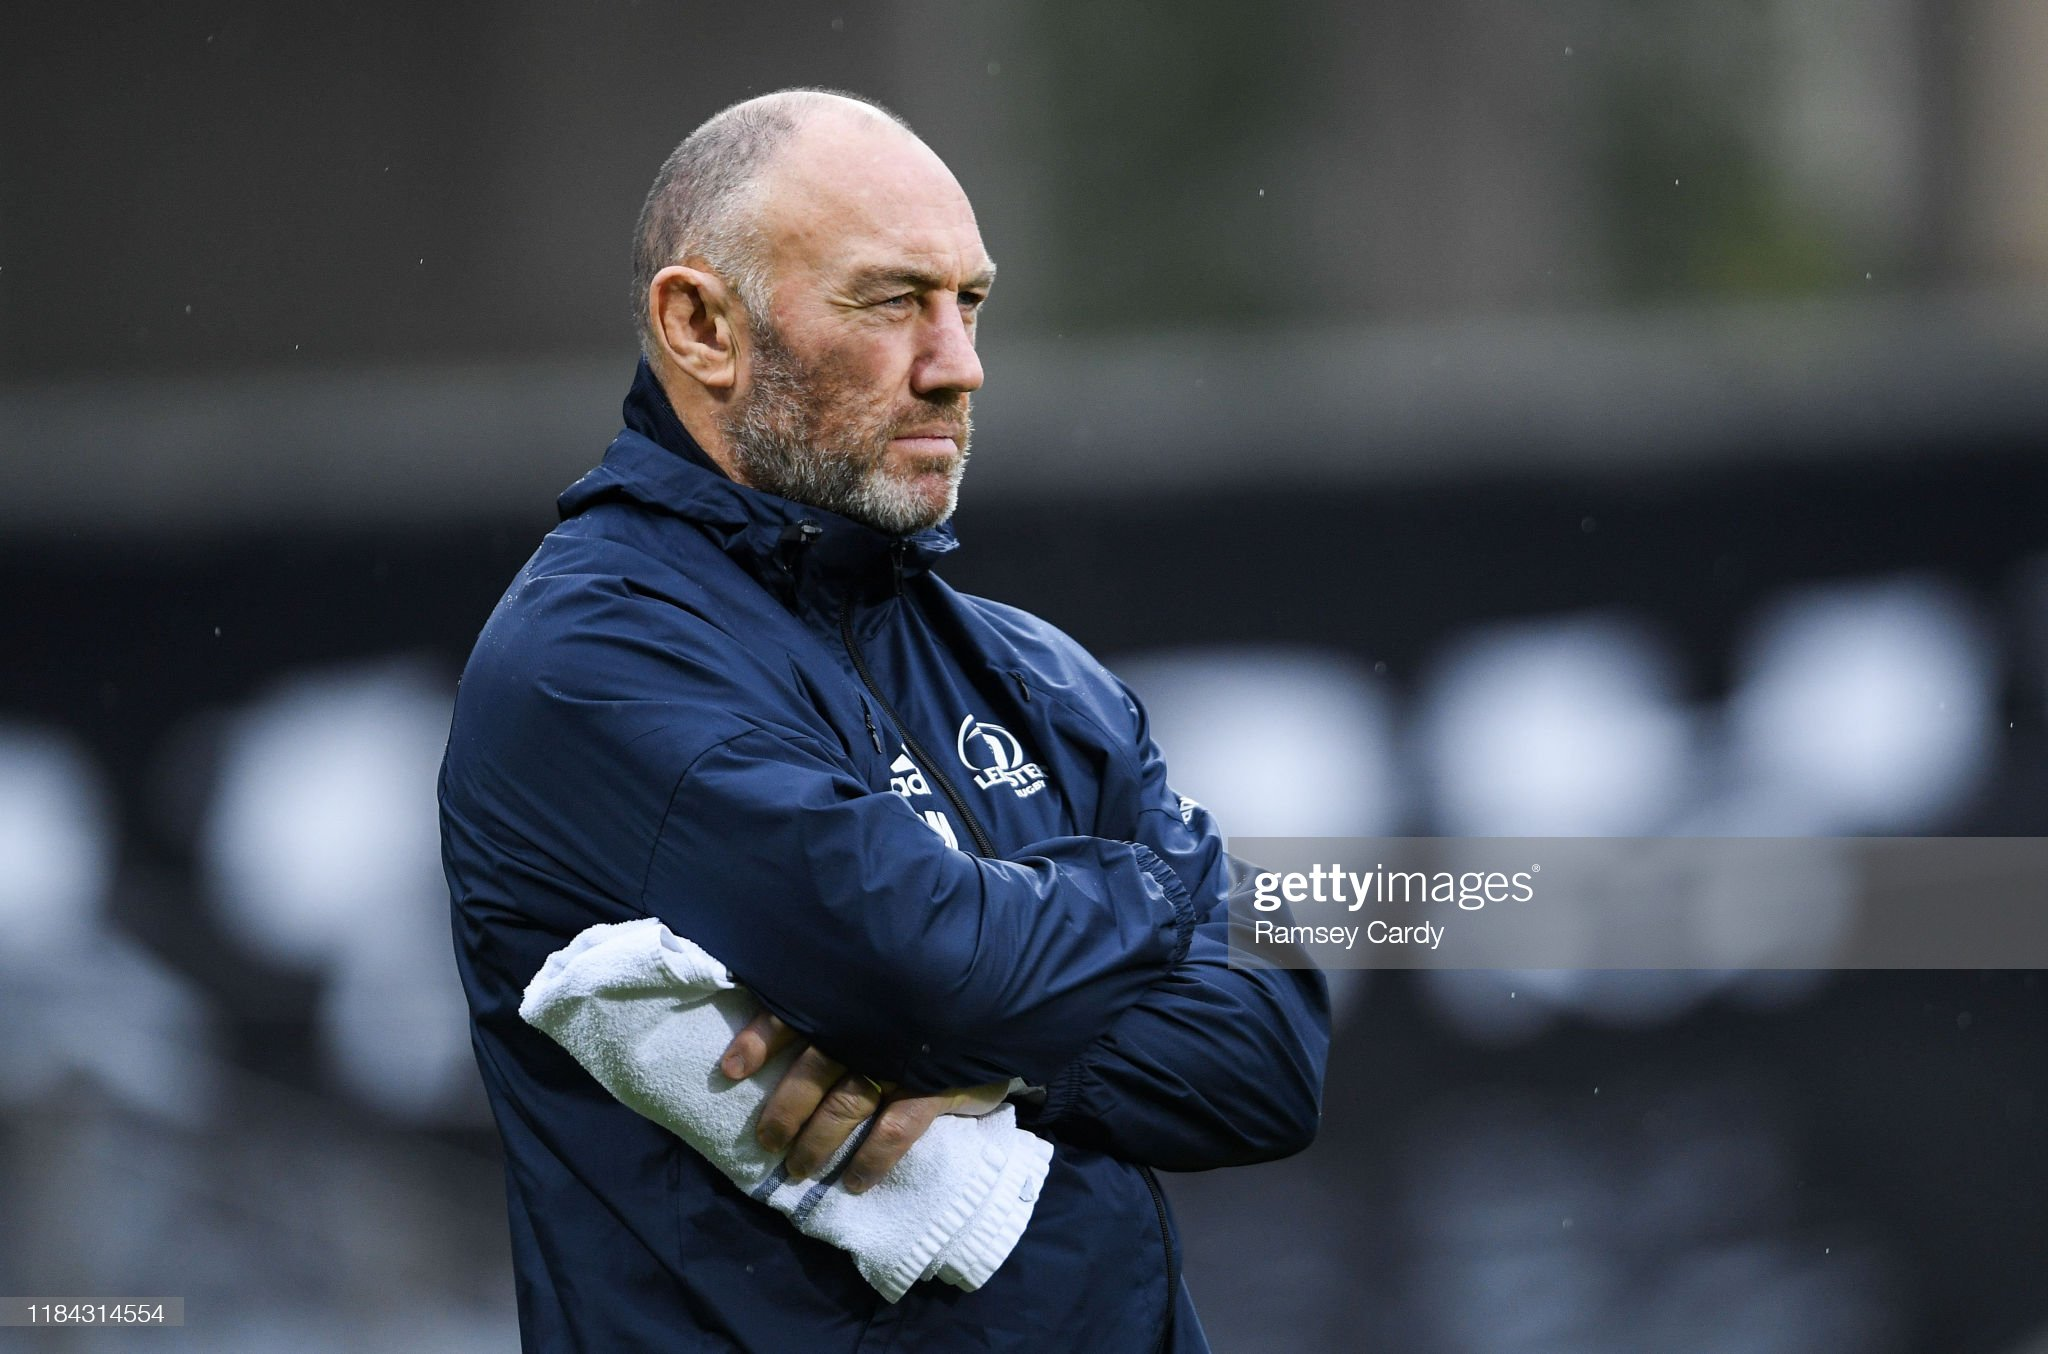 Wales Must Invest In Home Grown Coaches If They Want To Taste Success At Regional Level, Says Leinster Coach Robin McBryde